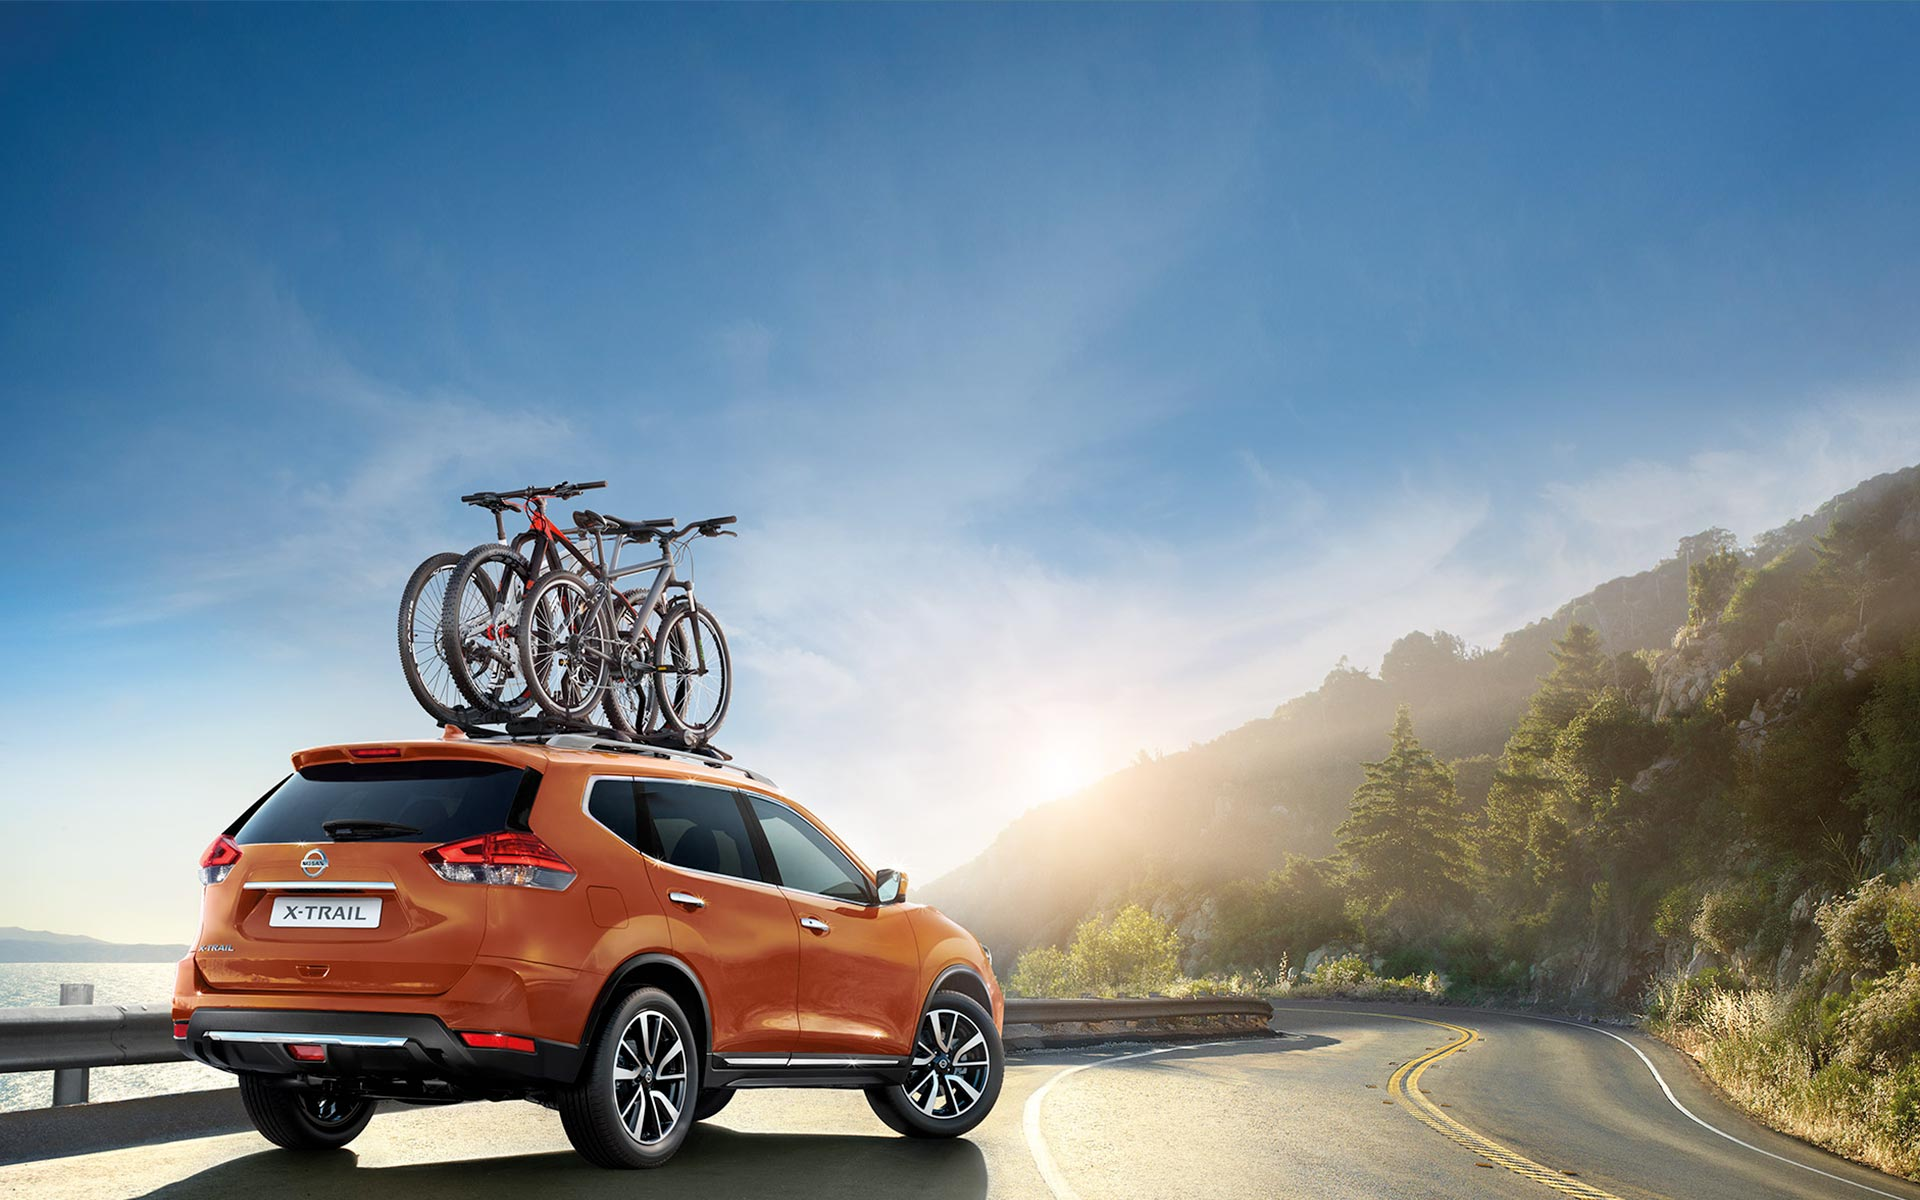 Nissan X-Trail SUV 7 places